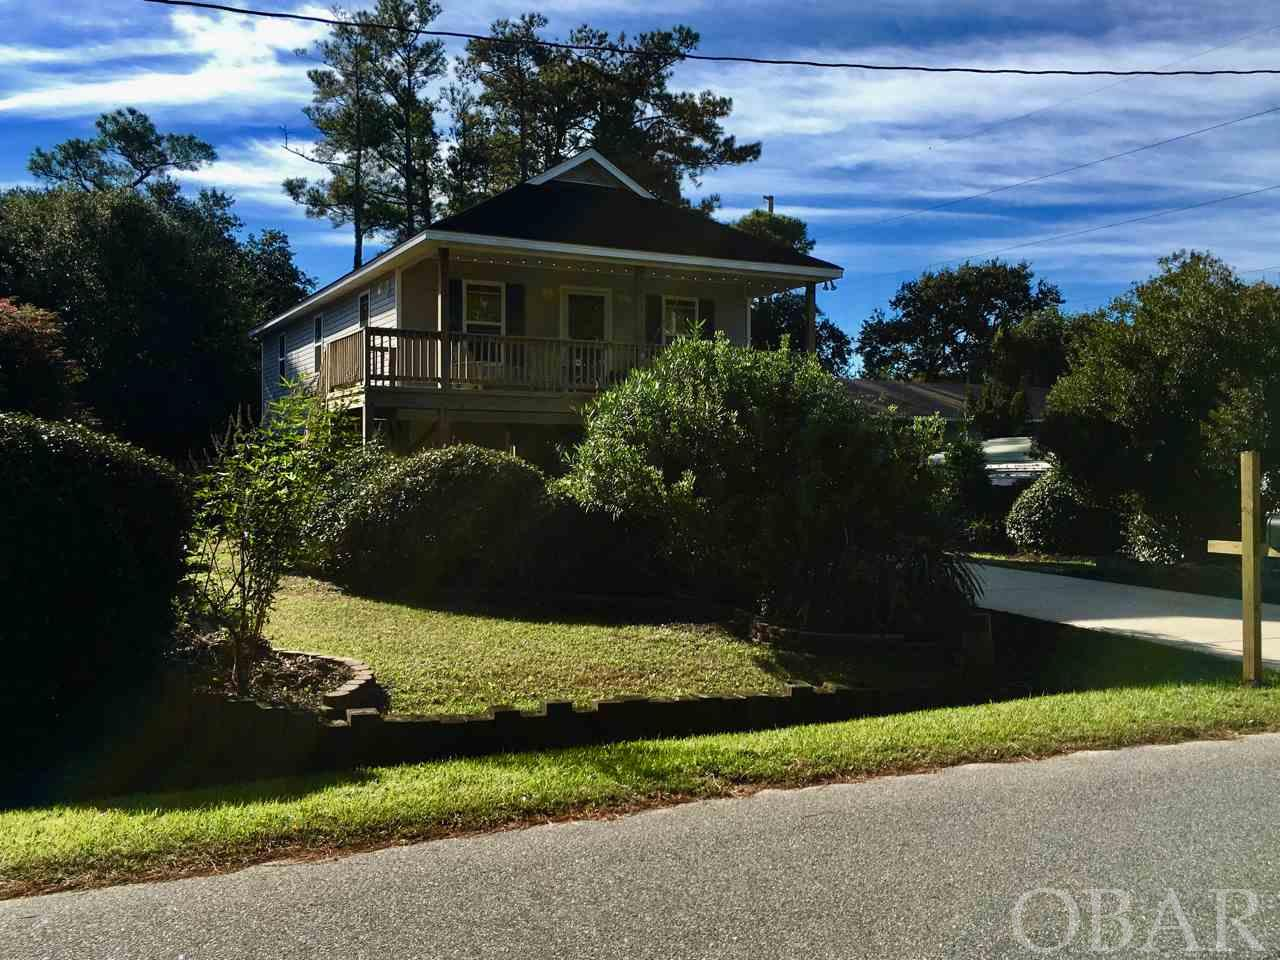 1103 Indian Drive,Kill Devil Hills,NC 27948,3 Bedrooms Bedrooms,2 BathroomsBathrooms,Residential,Indian Drive,98446